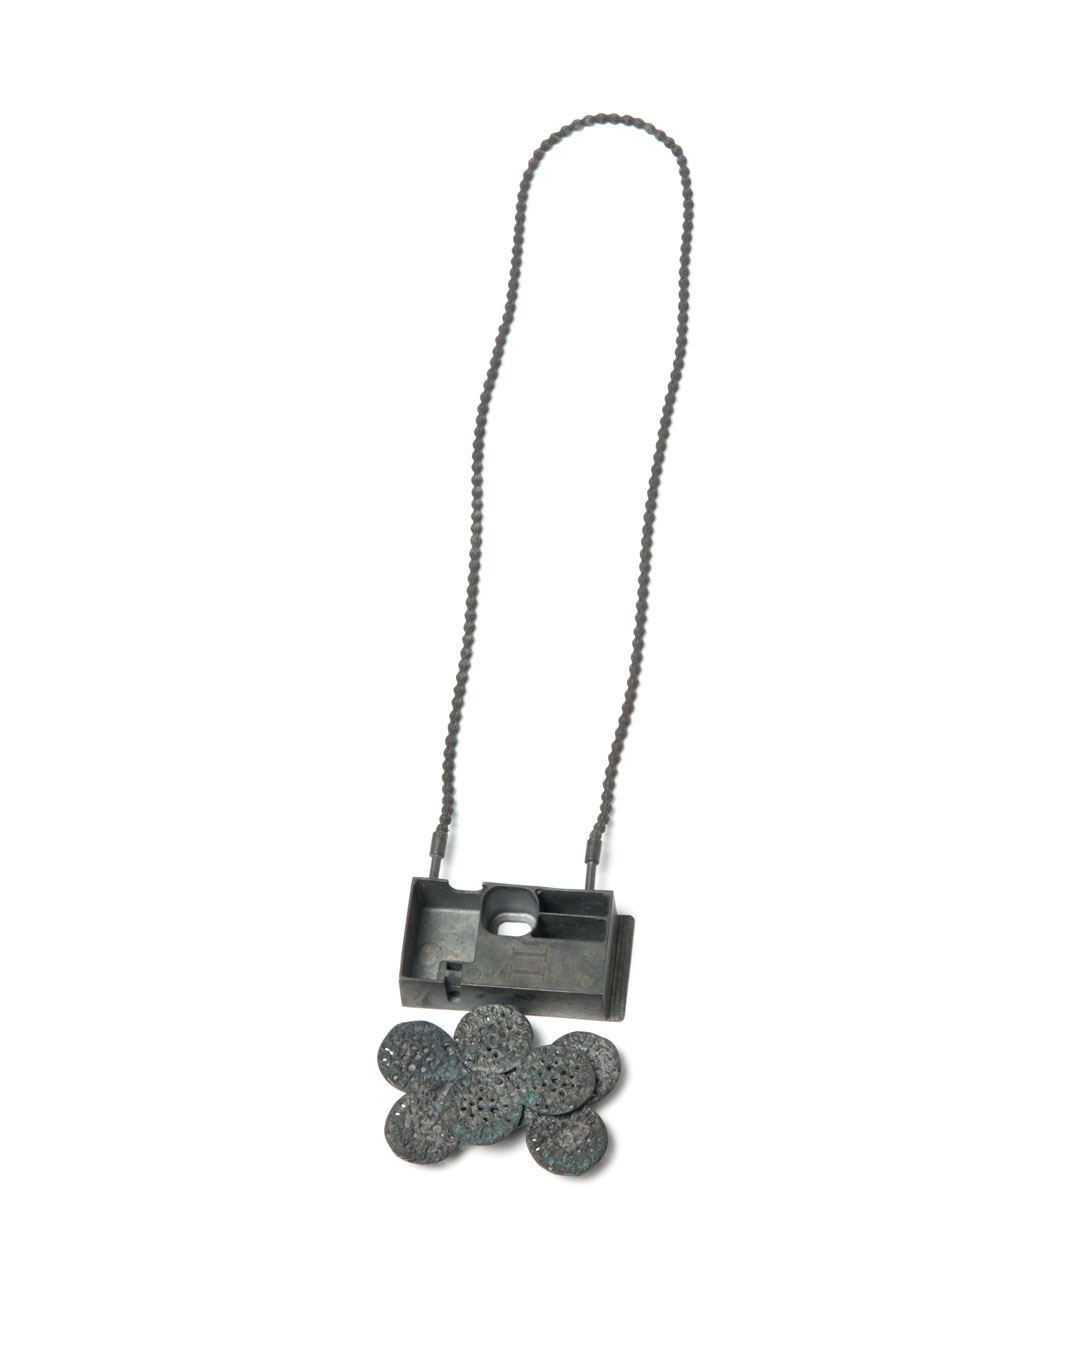 Winfried Krüger, untitled, 2013, necklace; oxidised silver, lead strapping, textile, element 70 x 70 mm, €2920